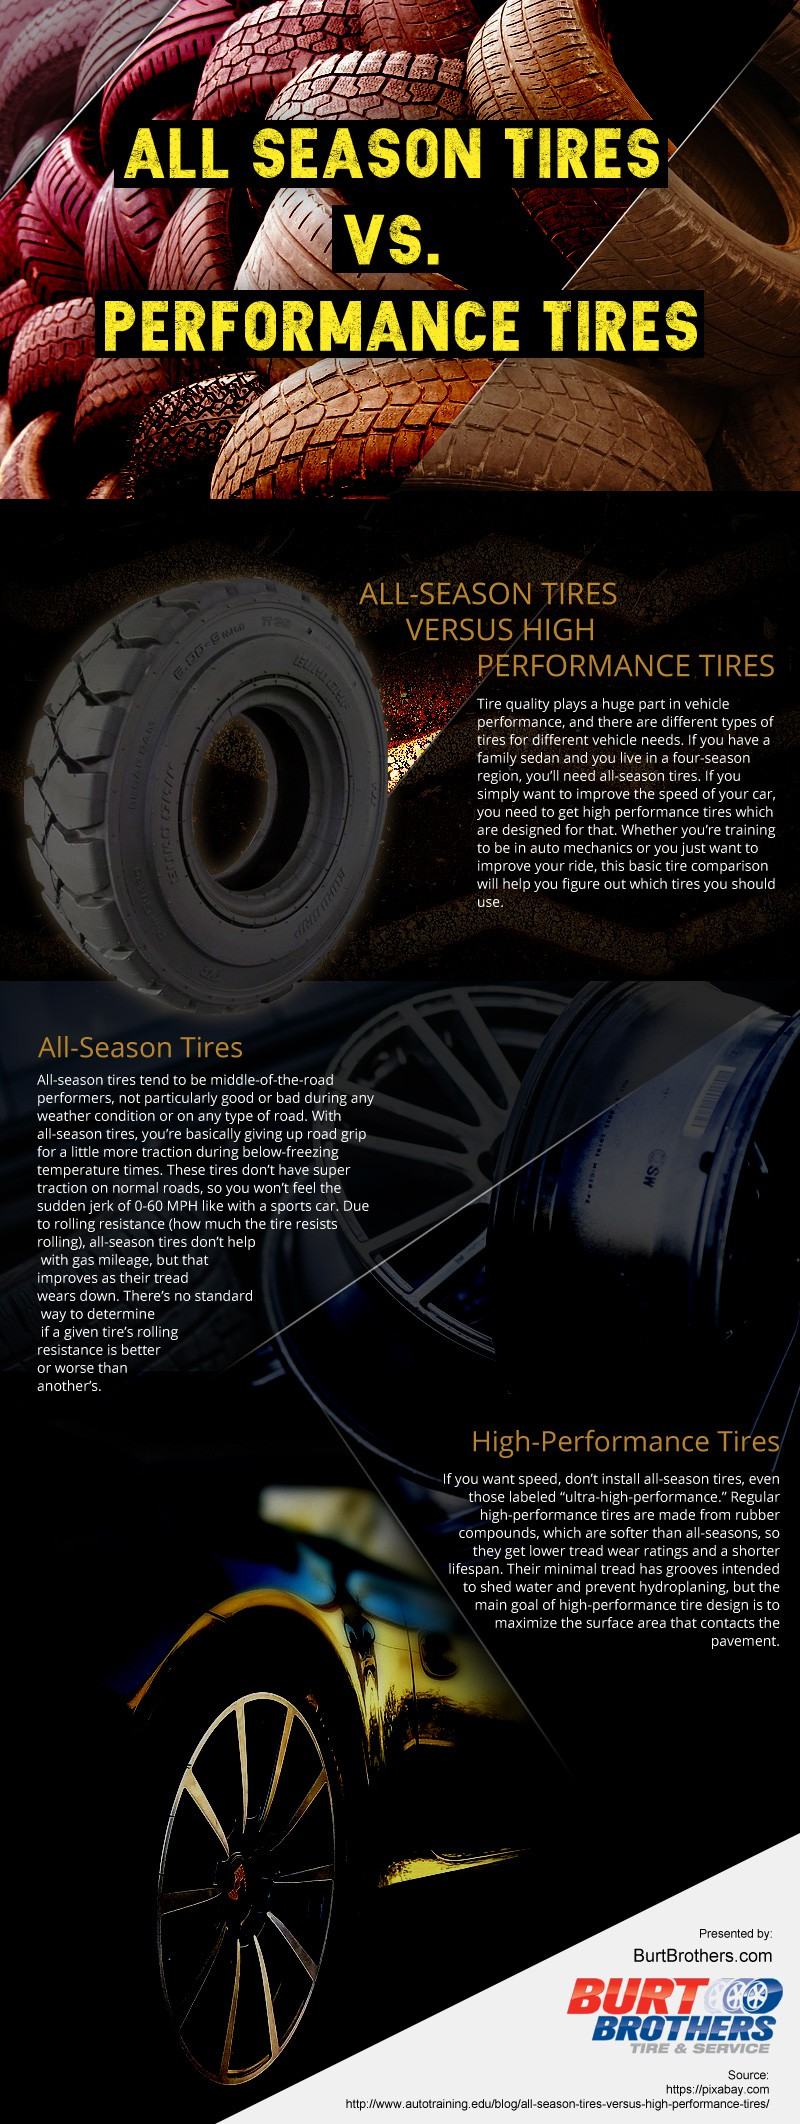 All Season Tires vs. Performance Tires